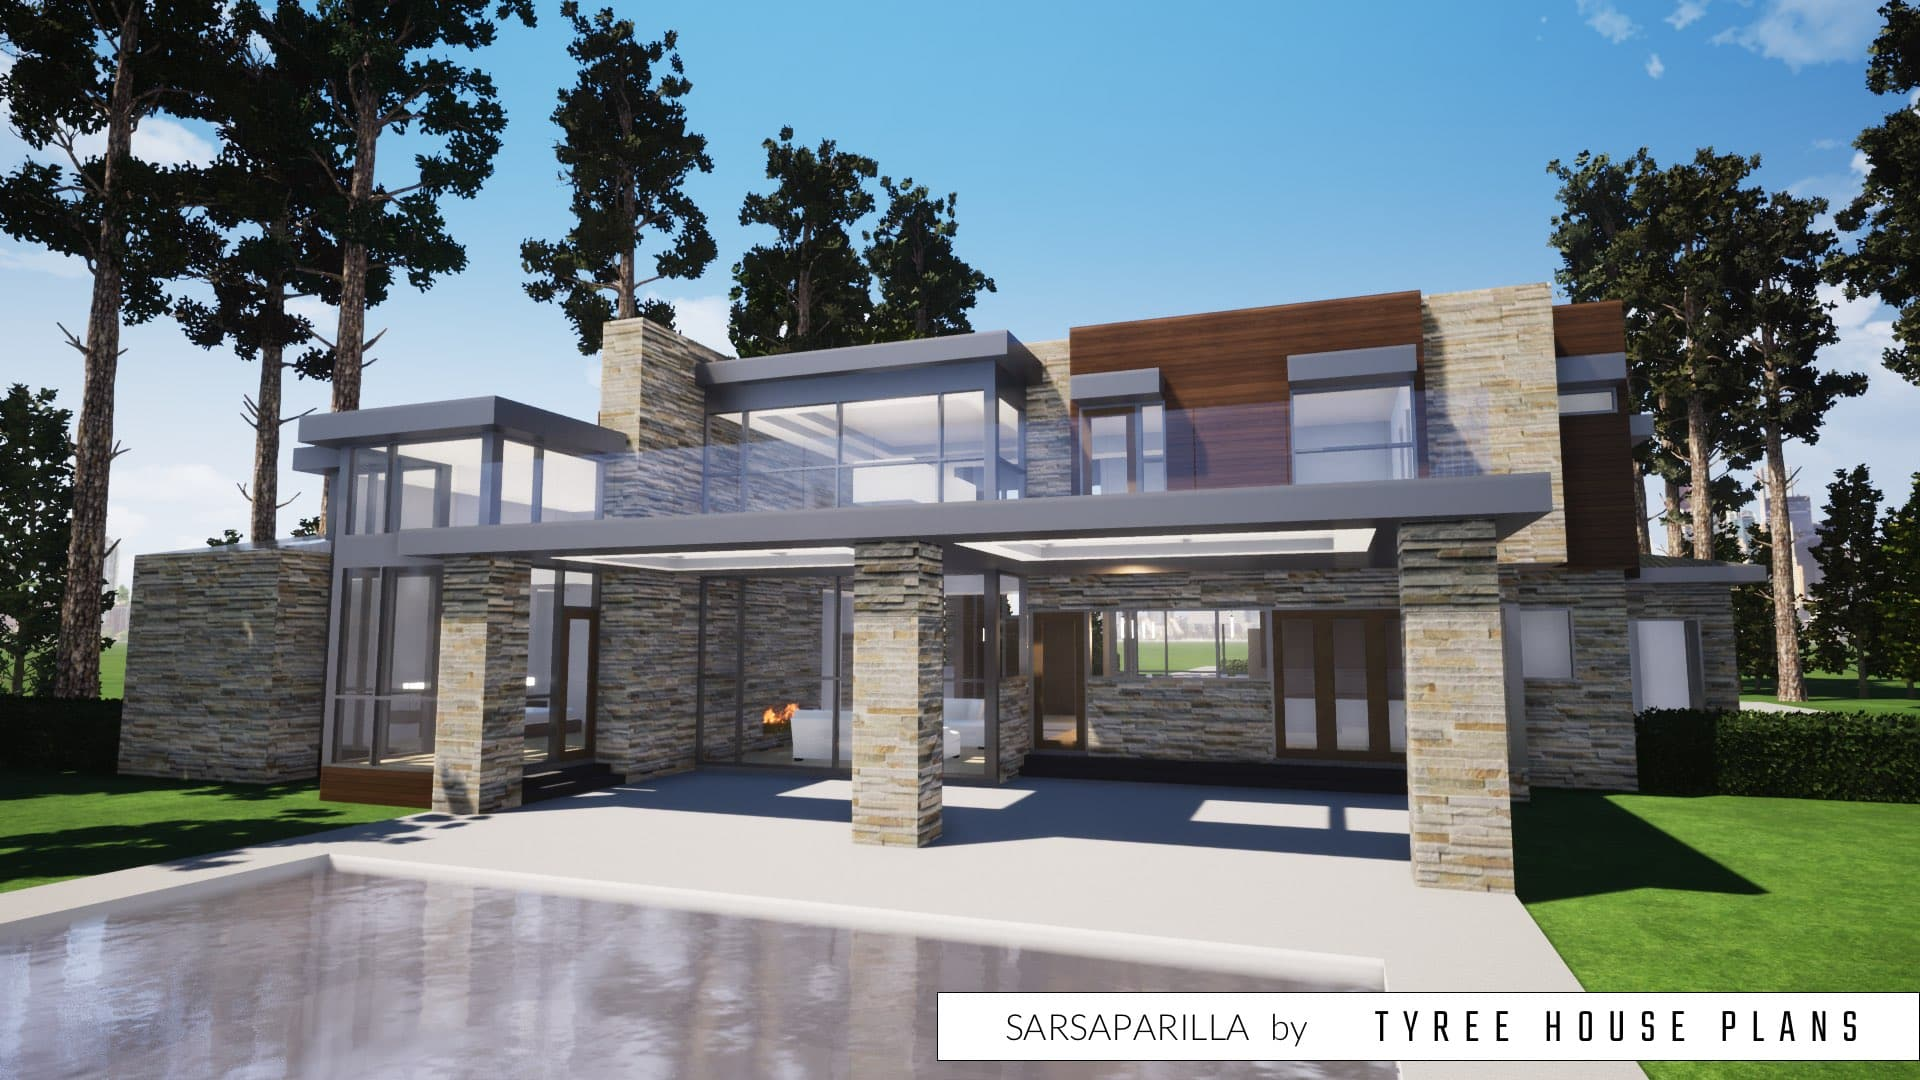 Sarsaparilla House Plan by Tyree House Plans